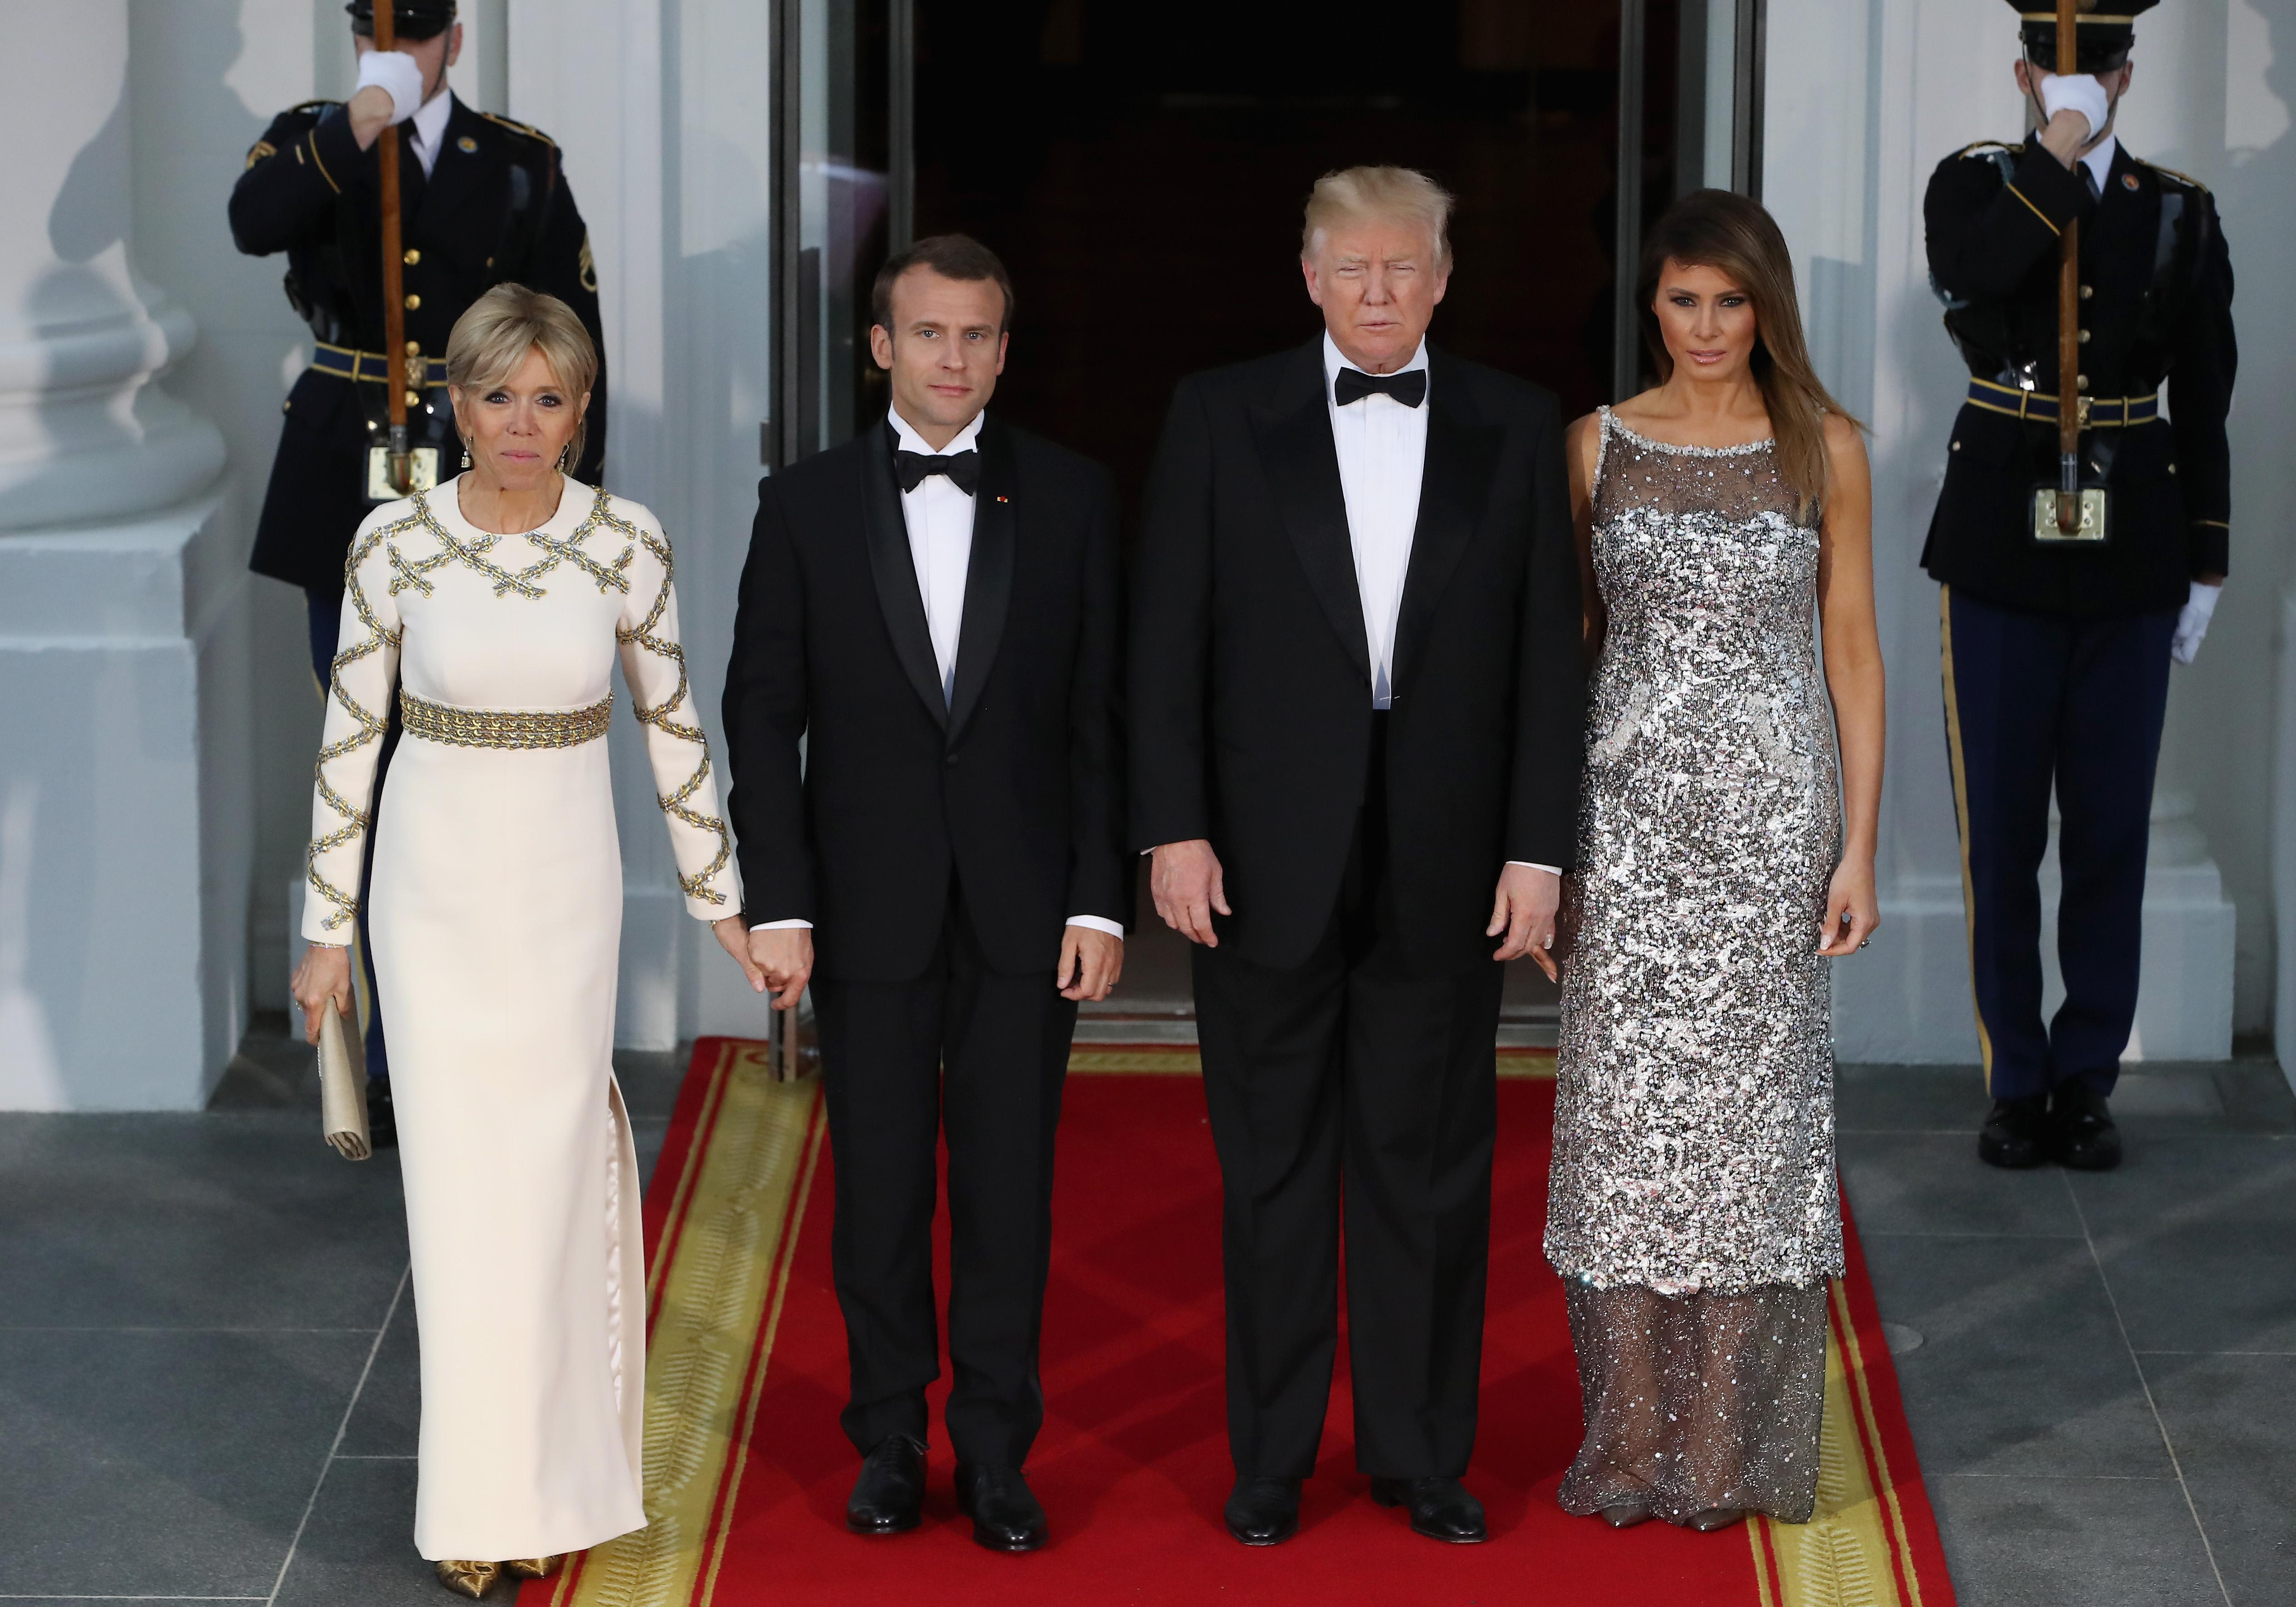 Trump's First State Dinner Likely Richest in History as President Welcomes Billionaires, Ignores Democrats and Journalists